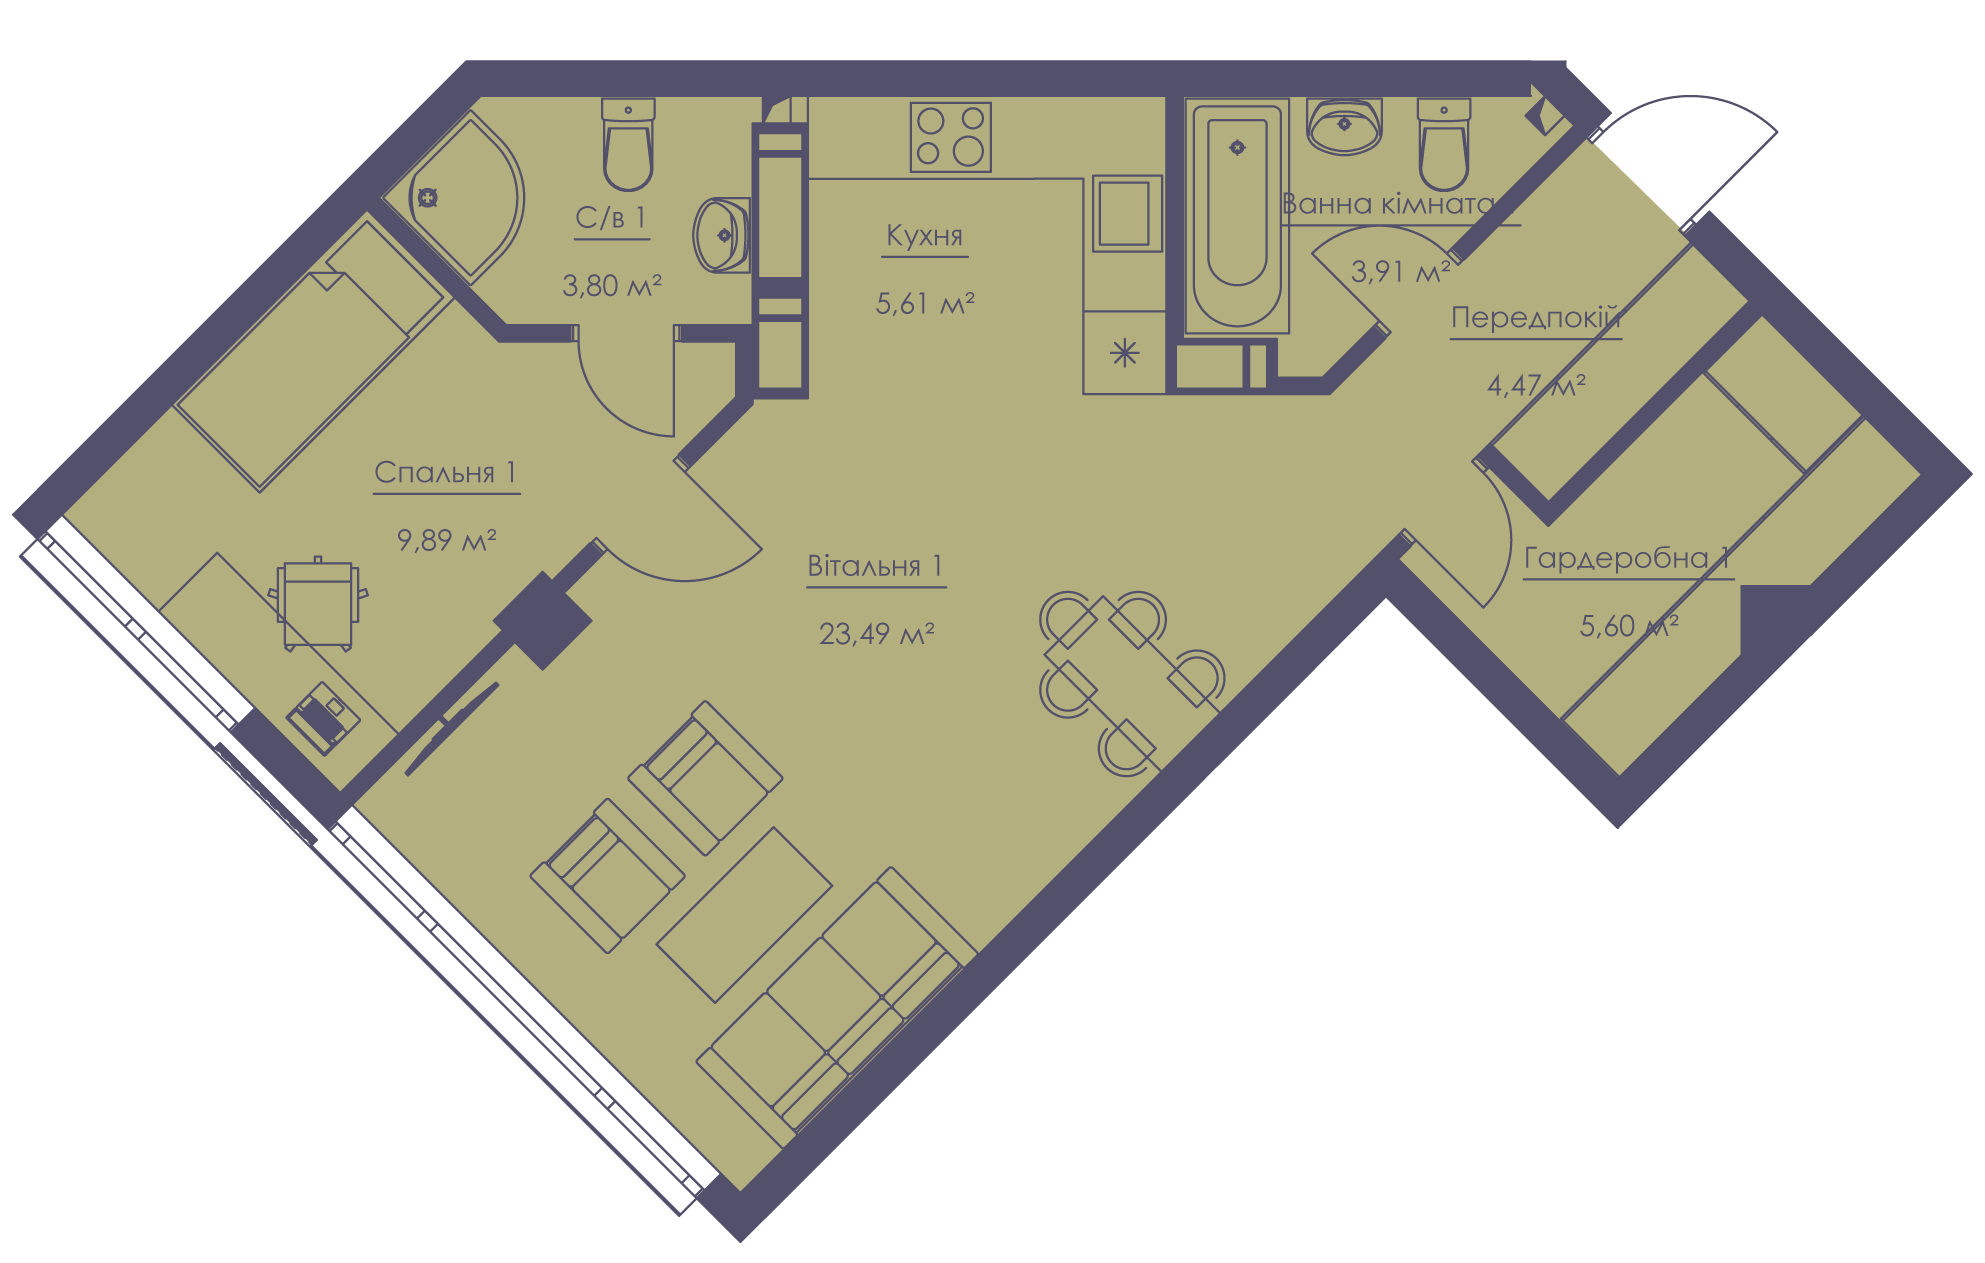 Apartment layout KV_61_2b_1_1_4-1